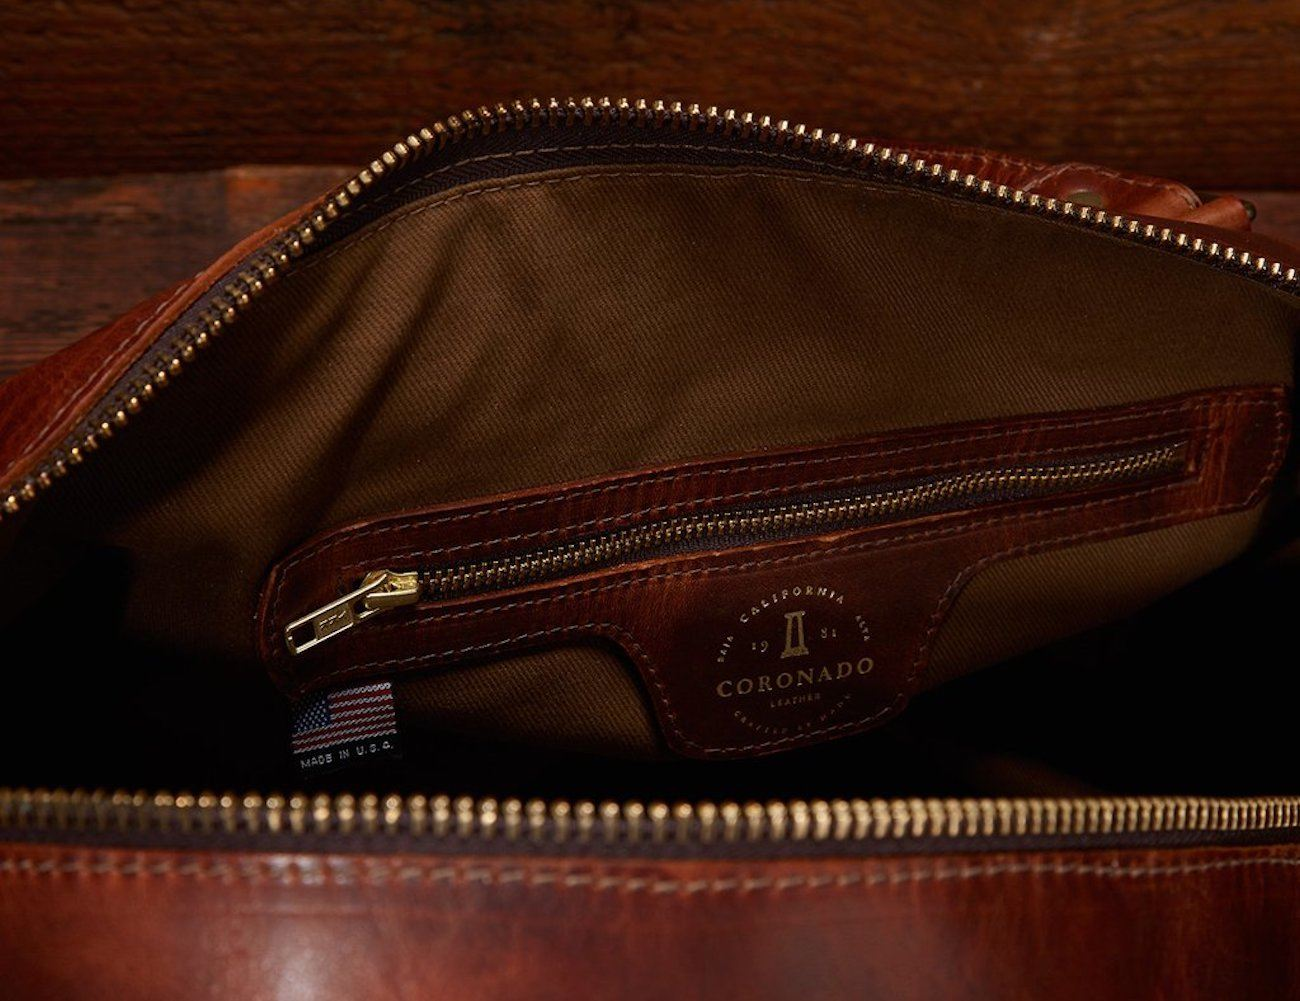 Coronado Americana Leather Duffle